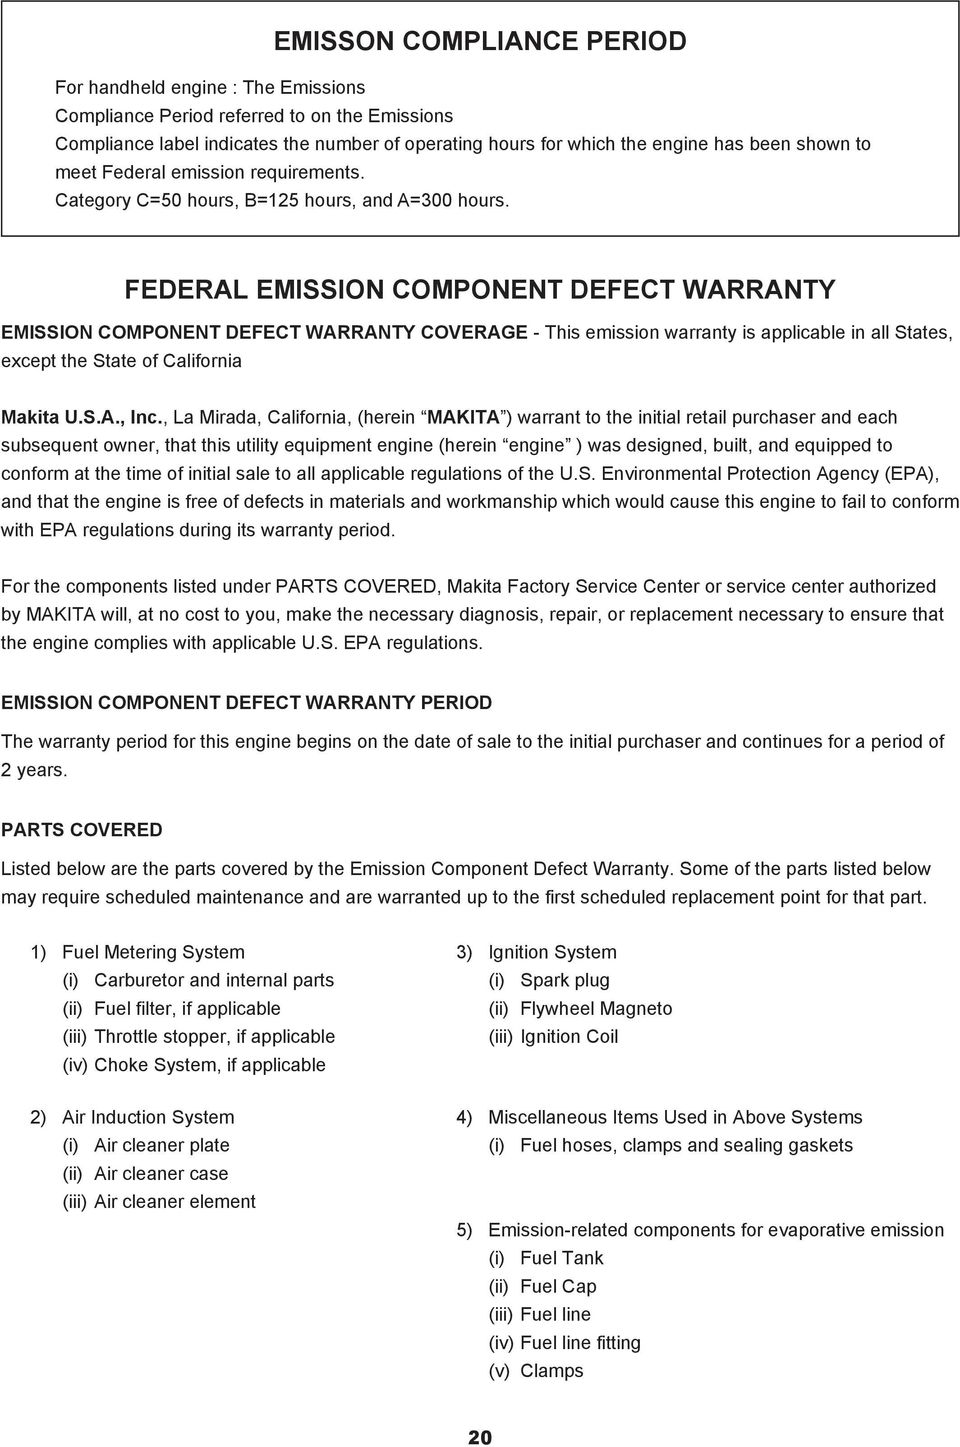 FEDERAL EMISSION COMPONENT DEFECT WARRANTY EMISSION COMPONENT DEFECT WARRANTY COVERAGE - This emission warranty is applicable in all States, except the State of California Makita U.S.A., Inc.